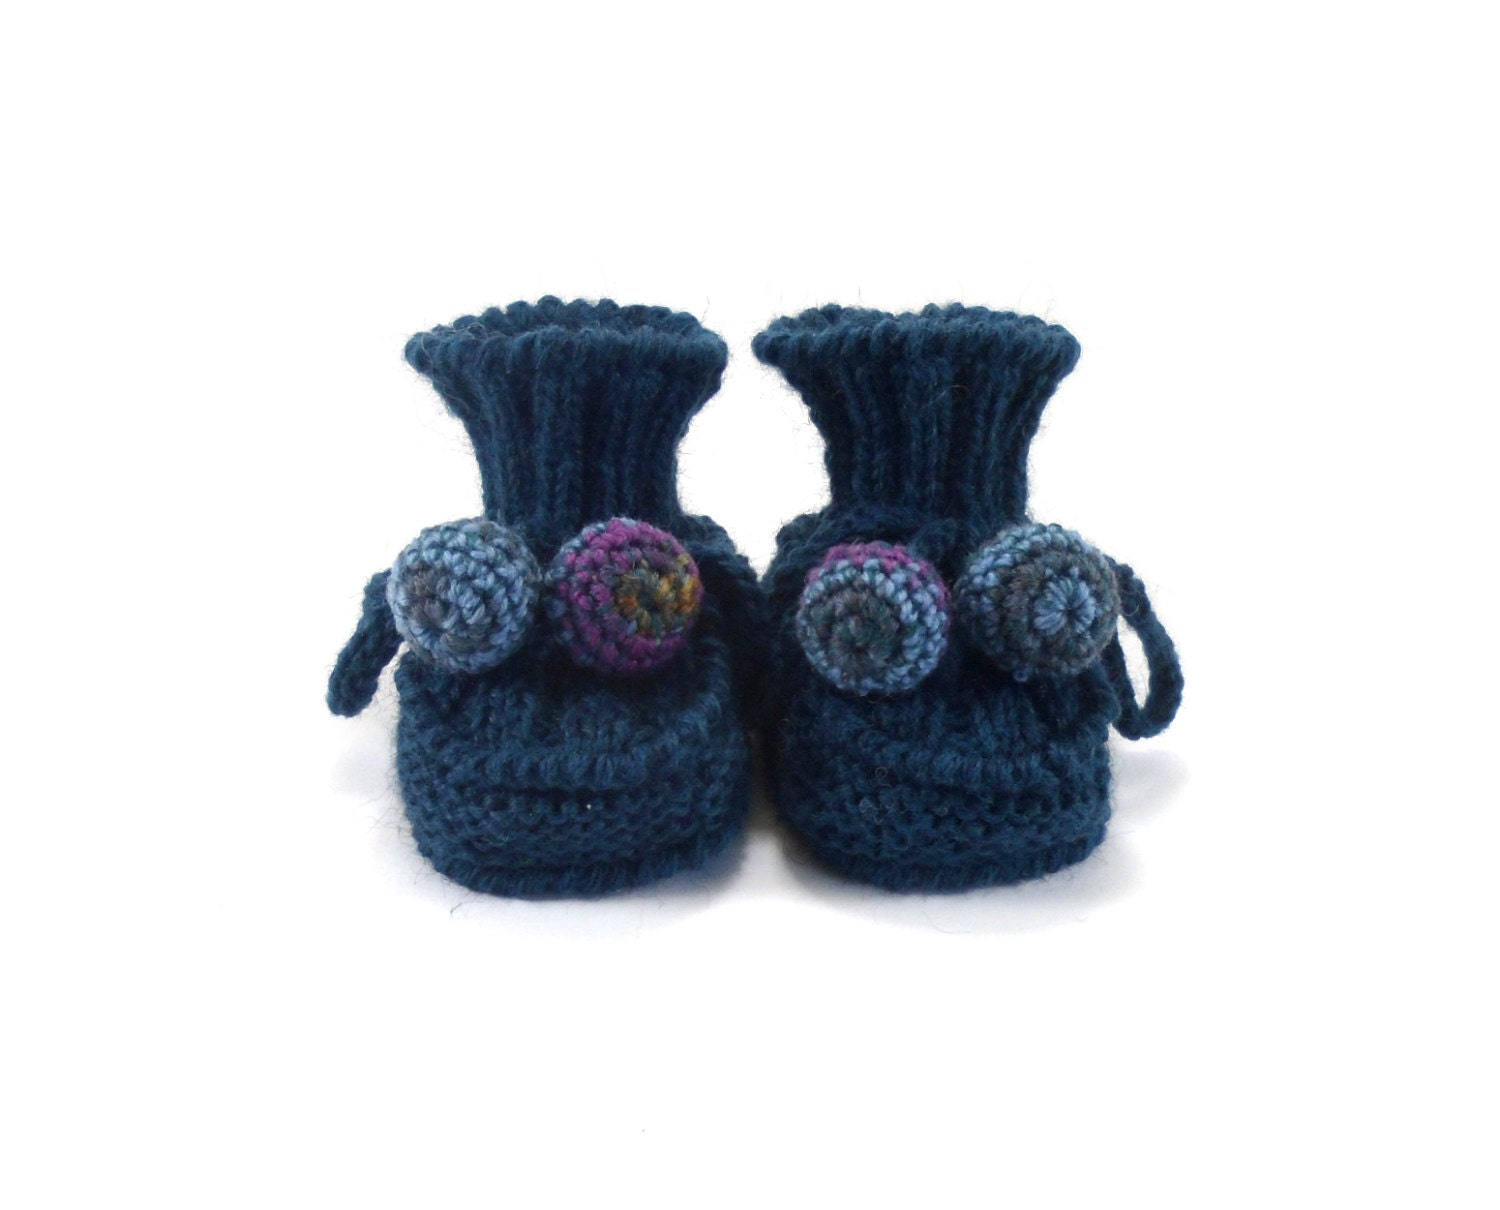 Knitted Baby Booties - Dark Teal, 0 - 3 months - SasasHandcrafts